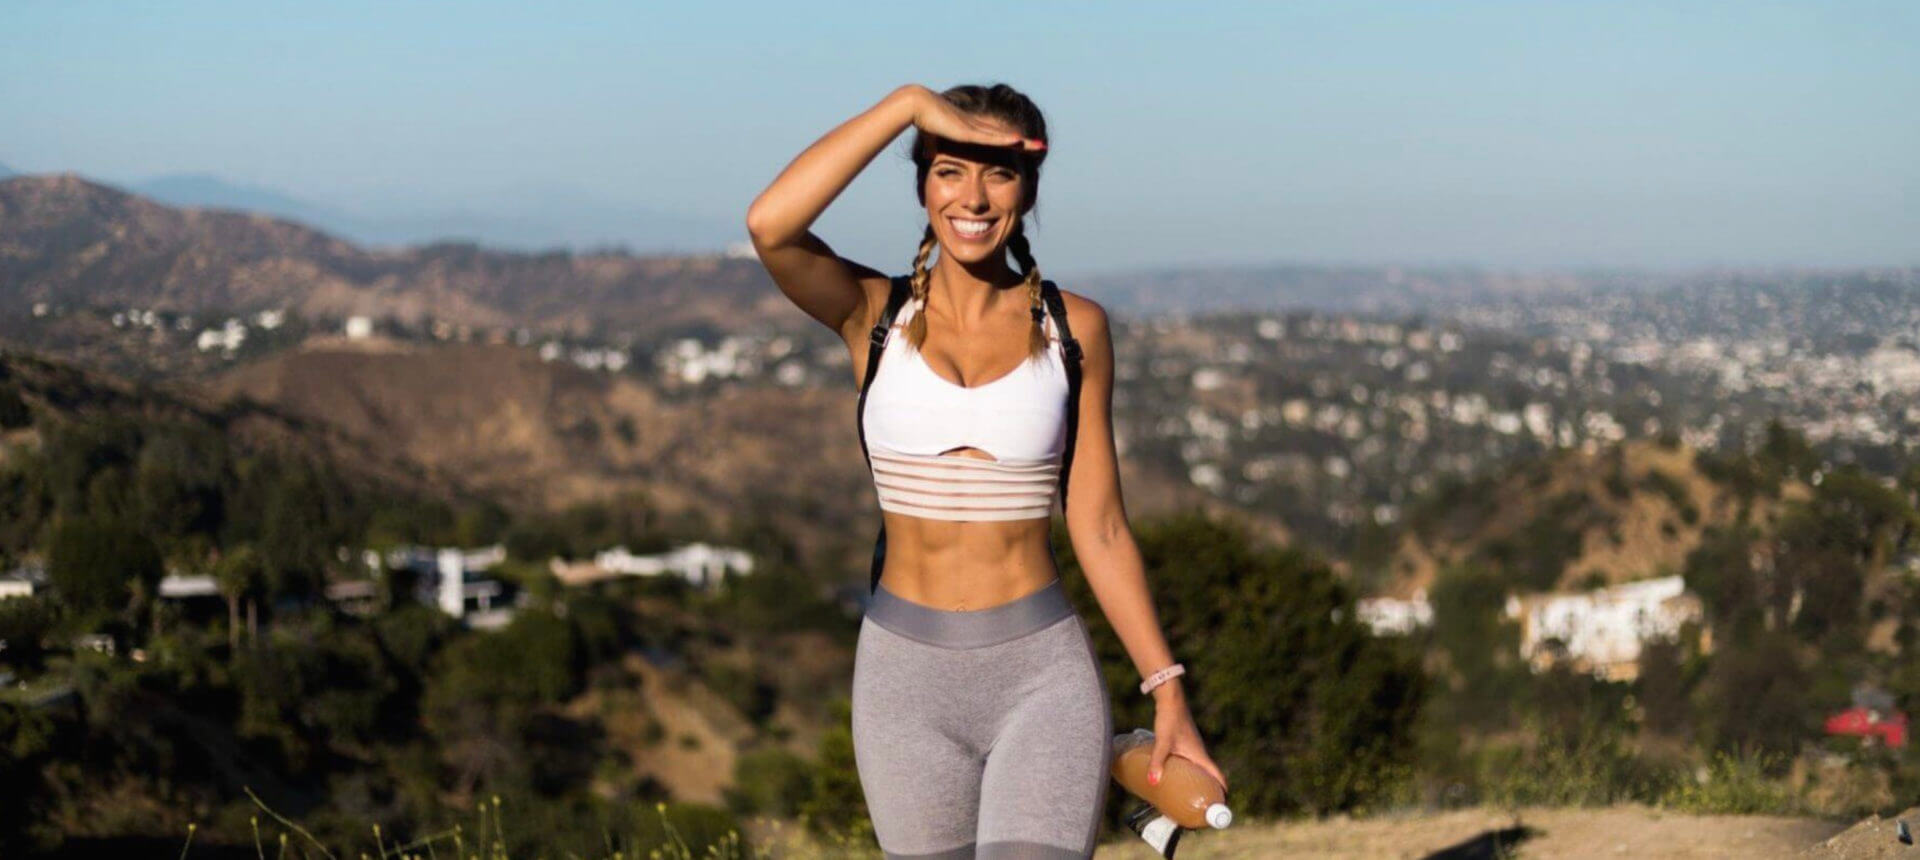 Fitness Entrepreneur Lilly Sabri -  3 million followers and bigger goals to come